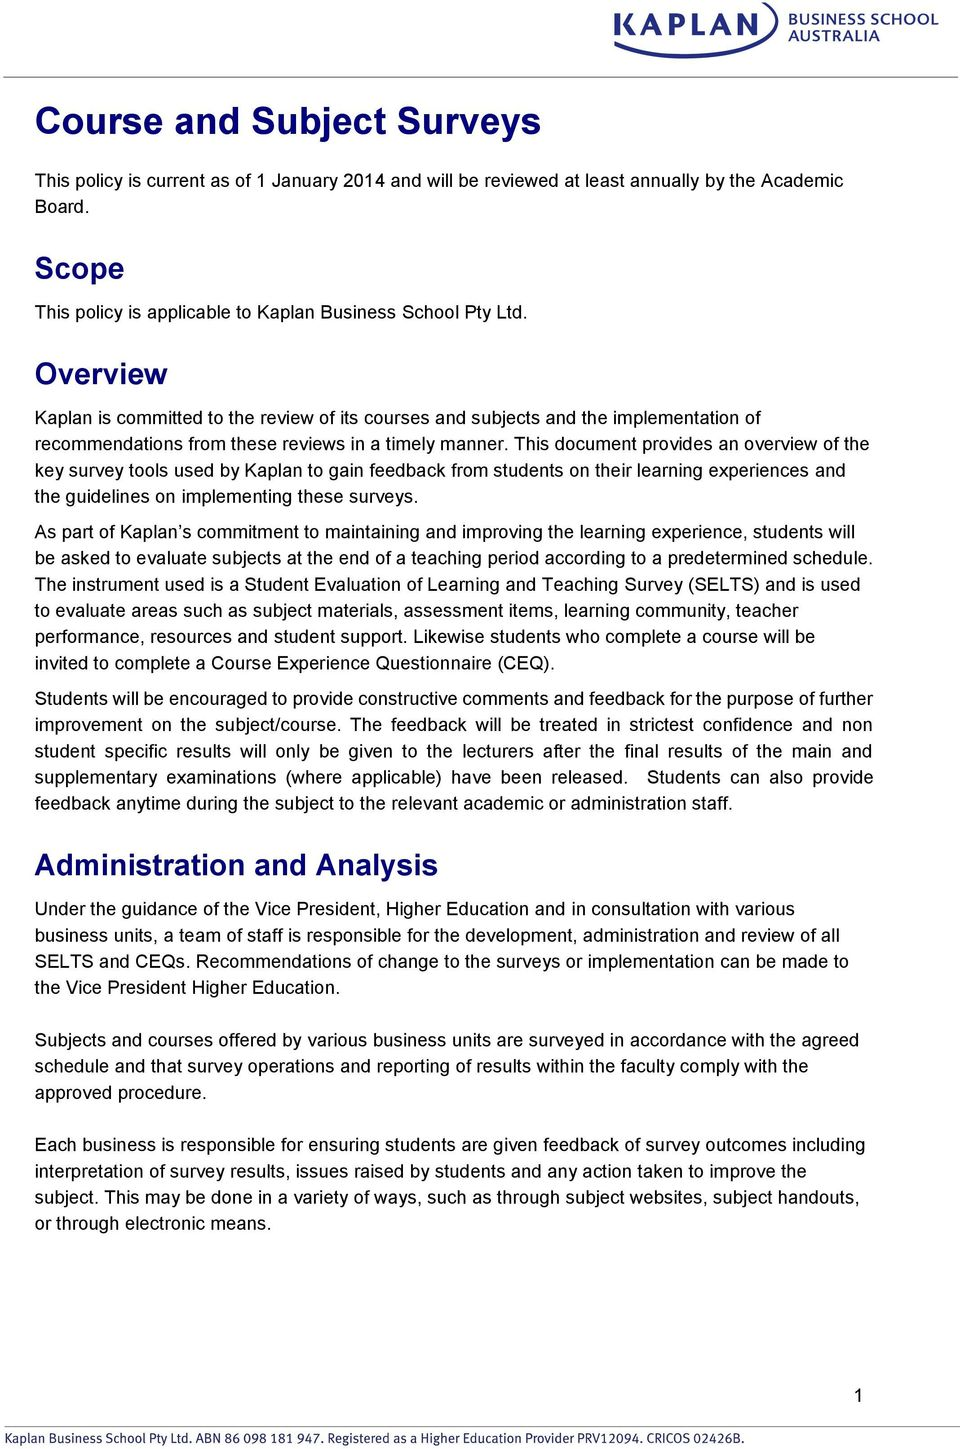 This document provides an overview of the key survey tools used by Kaplan to gain feedback from students on their learning experiences and the guidelines on implementing these surveys.